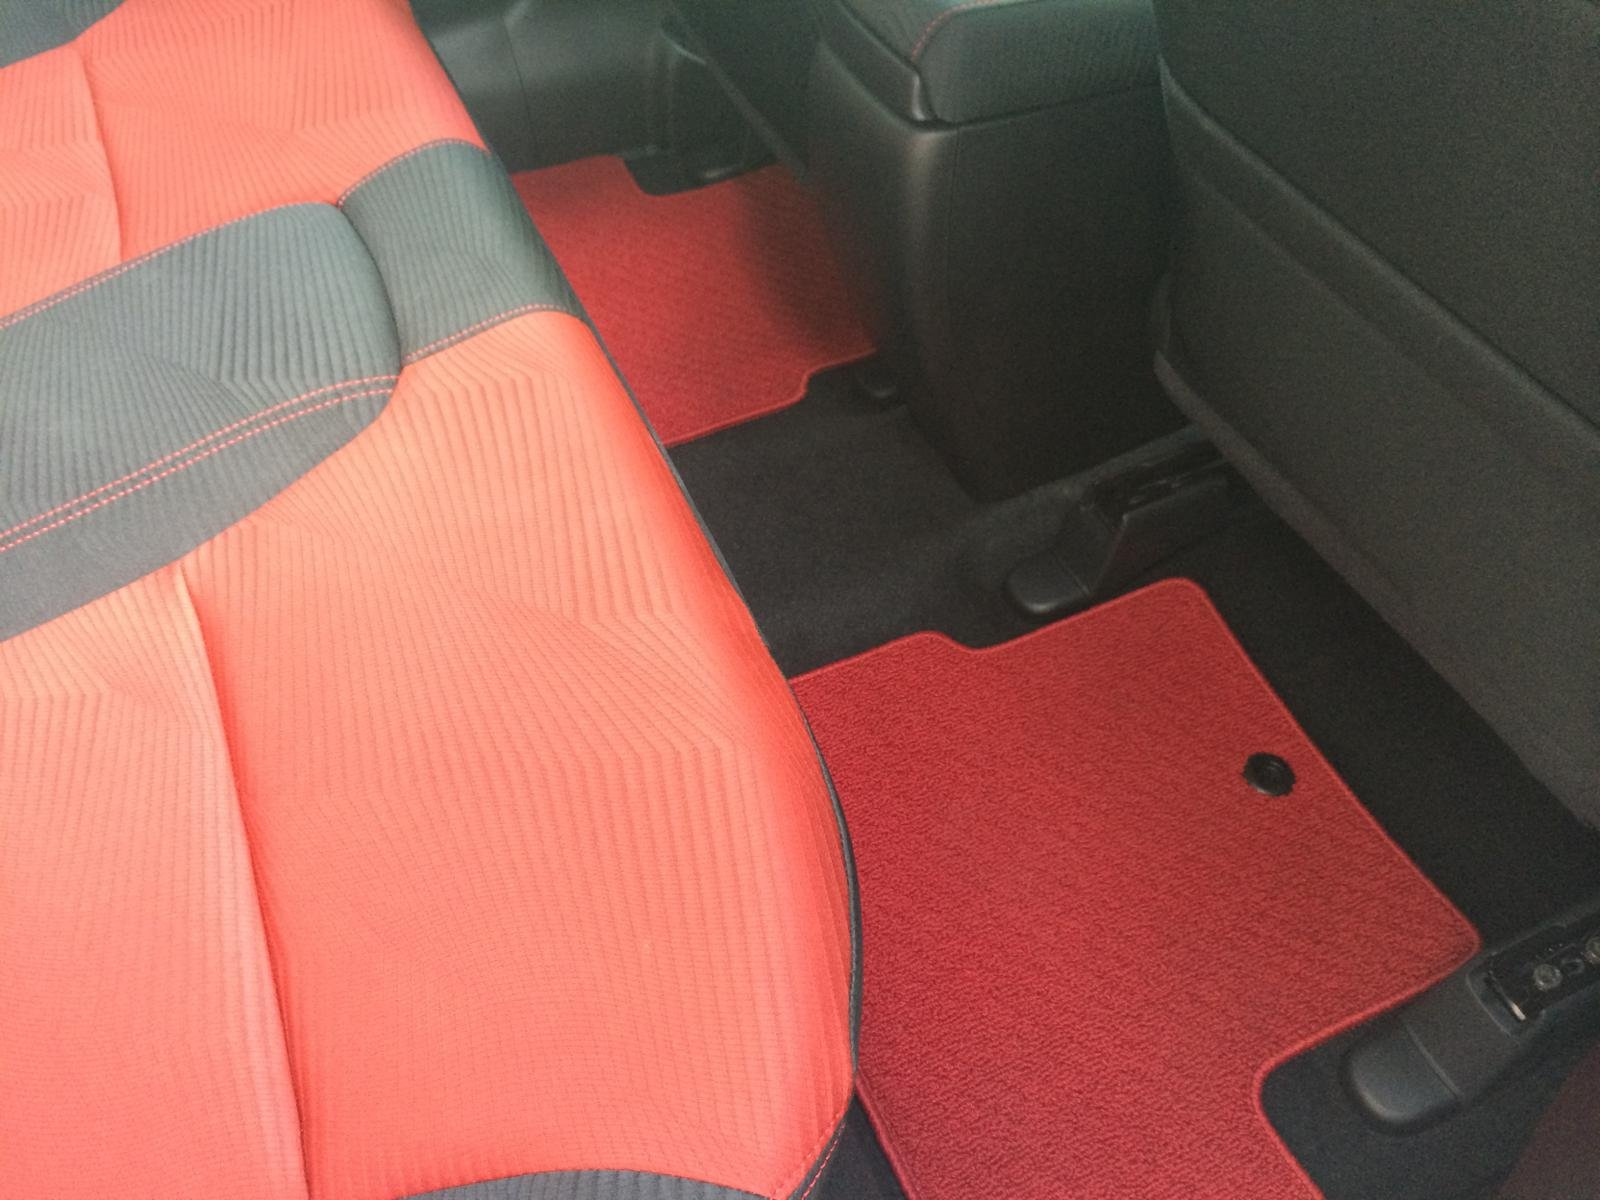 Red Hfp Floor Mats Page 5 9th Gen Civic Forum